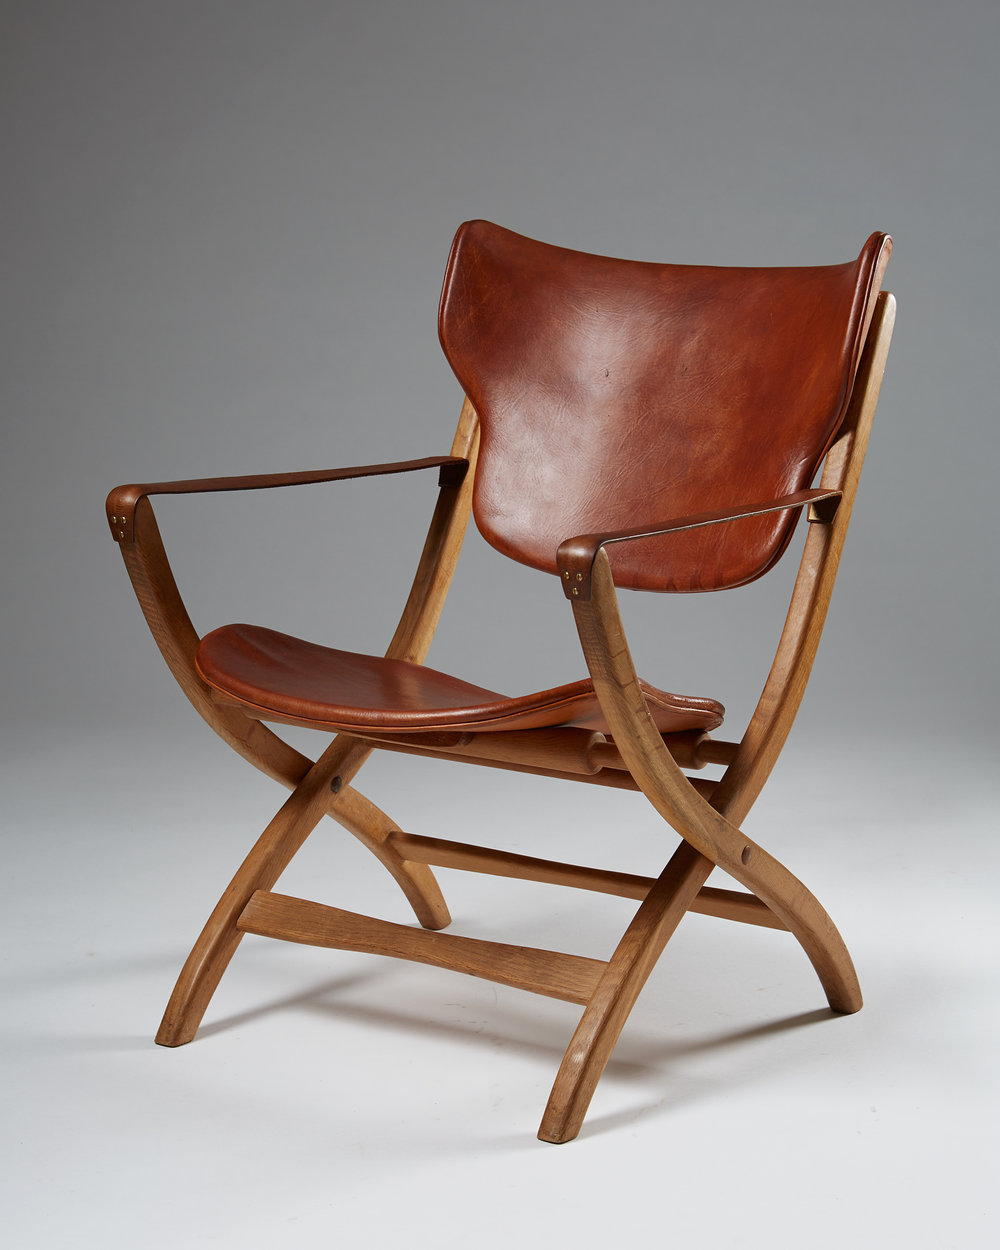 Poul Hundevad  Egyptian Chair Denmark, 1950's Oak and natural leather 80 x 54 x 68 cm Seat height: 38 cm